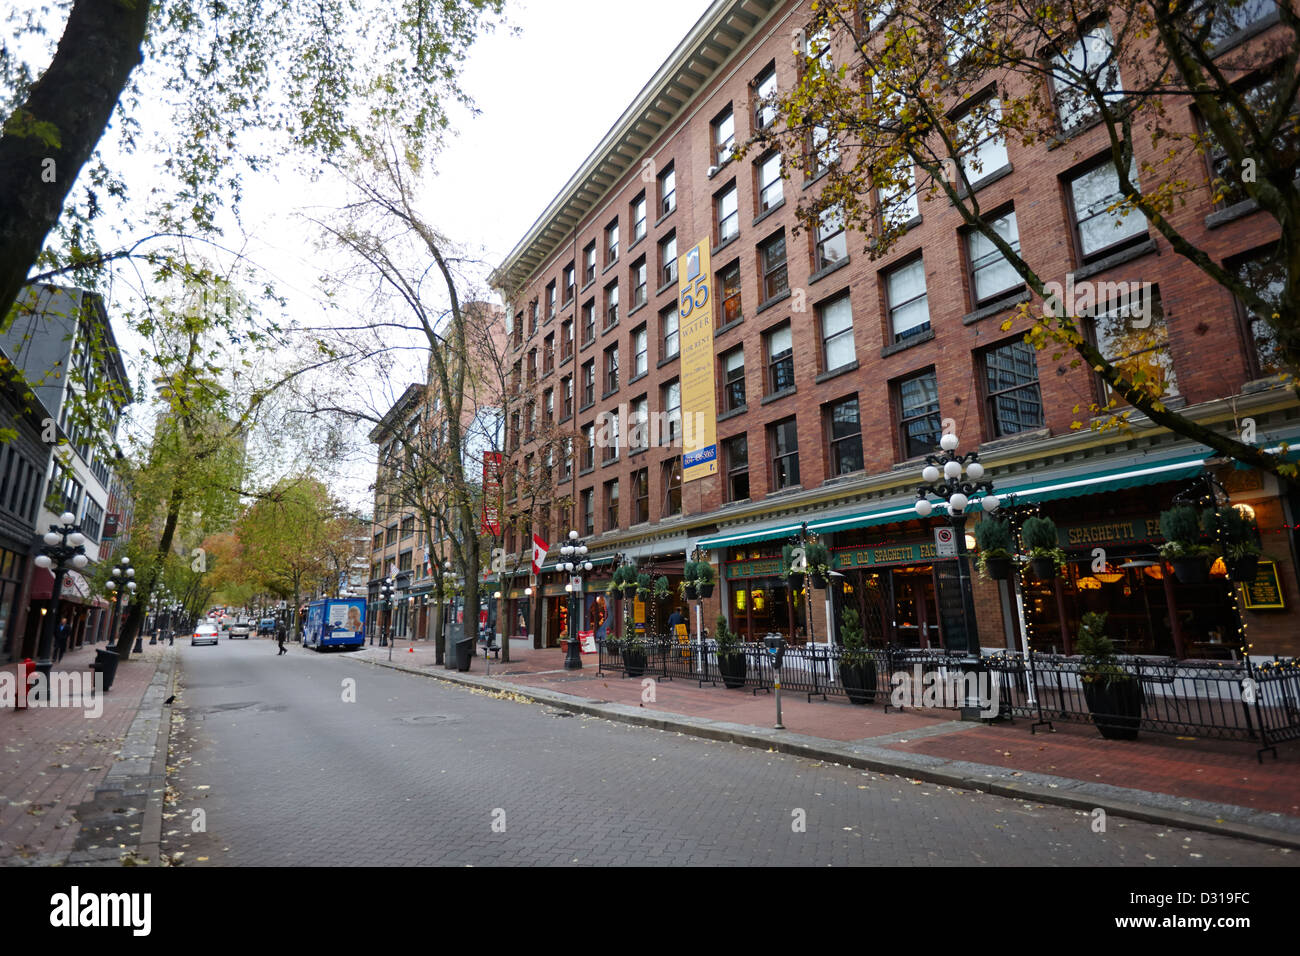 old warehouses and red brick buildings on historic water street in gastown Vancouver BC Canada - Stock Image